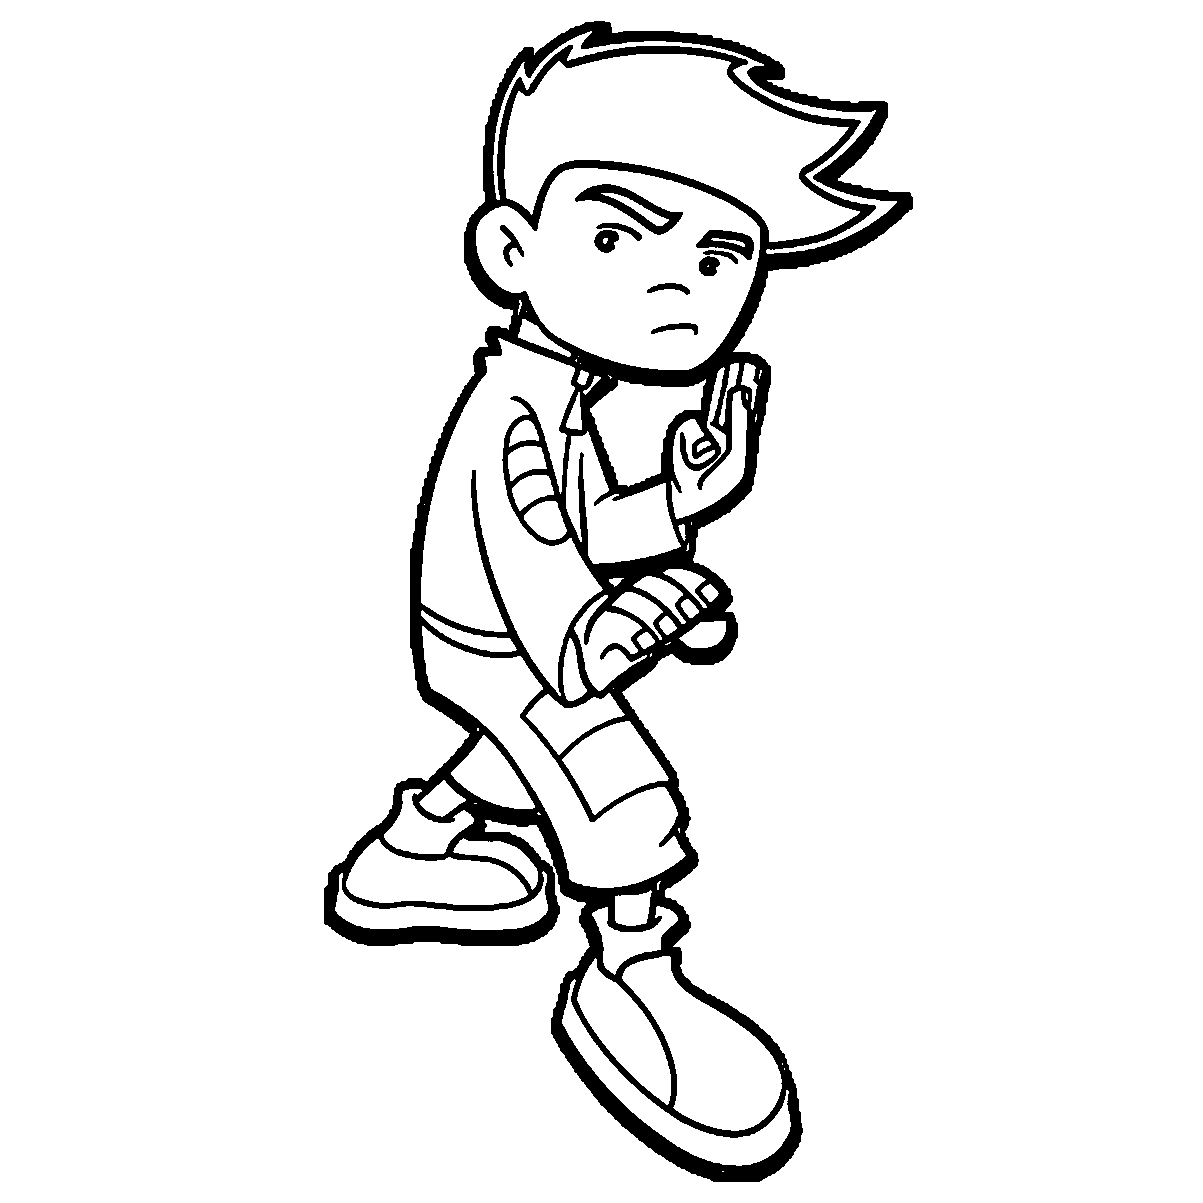 Jake Paul Coloring Pages - Jake Paul Coloring Pages Coloring Pages